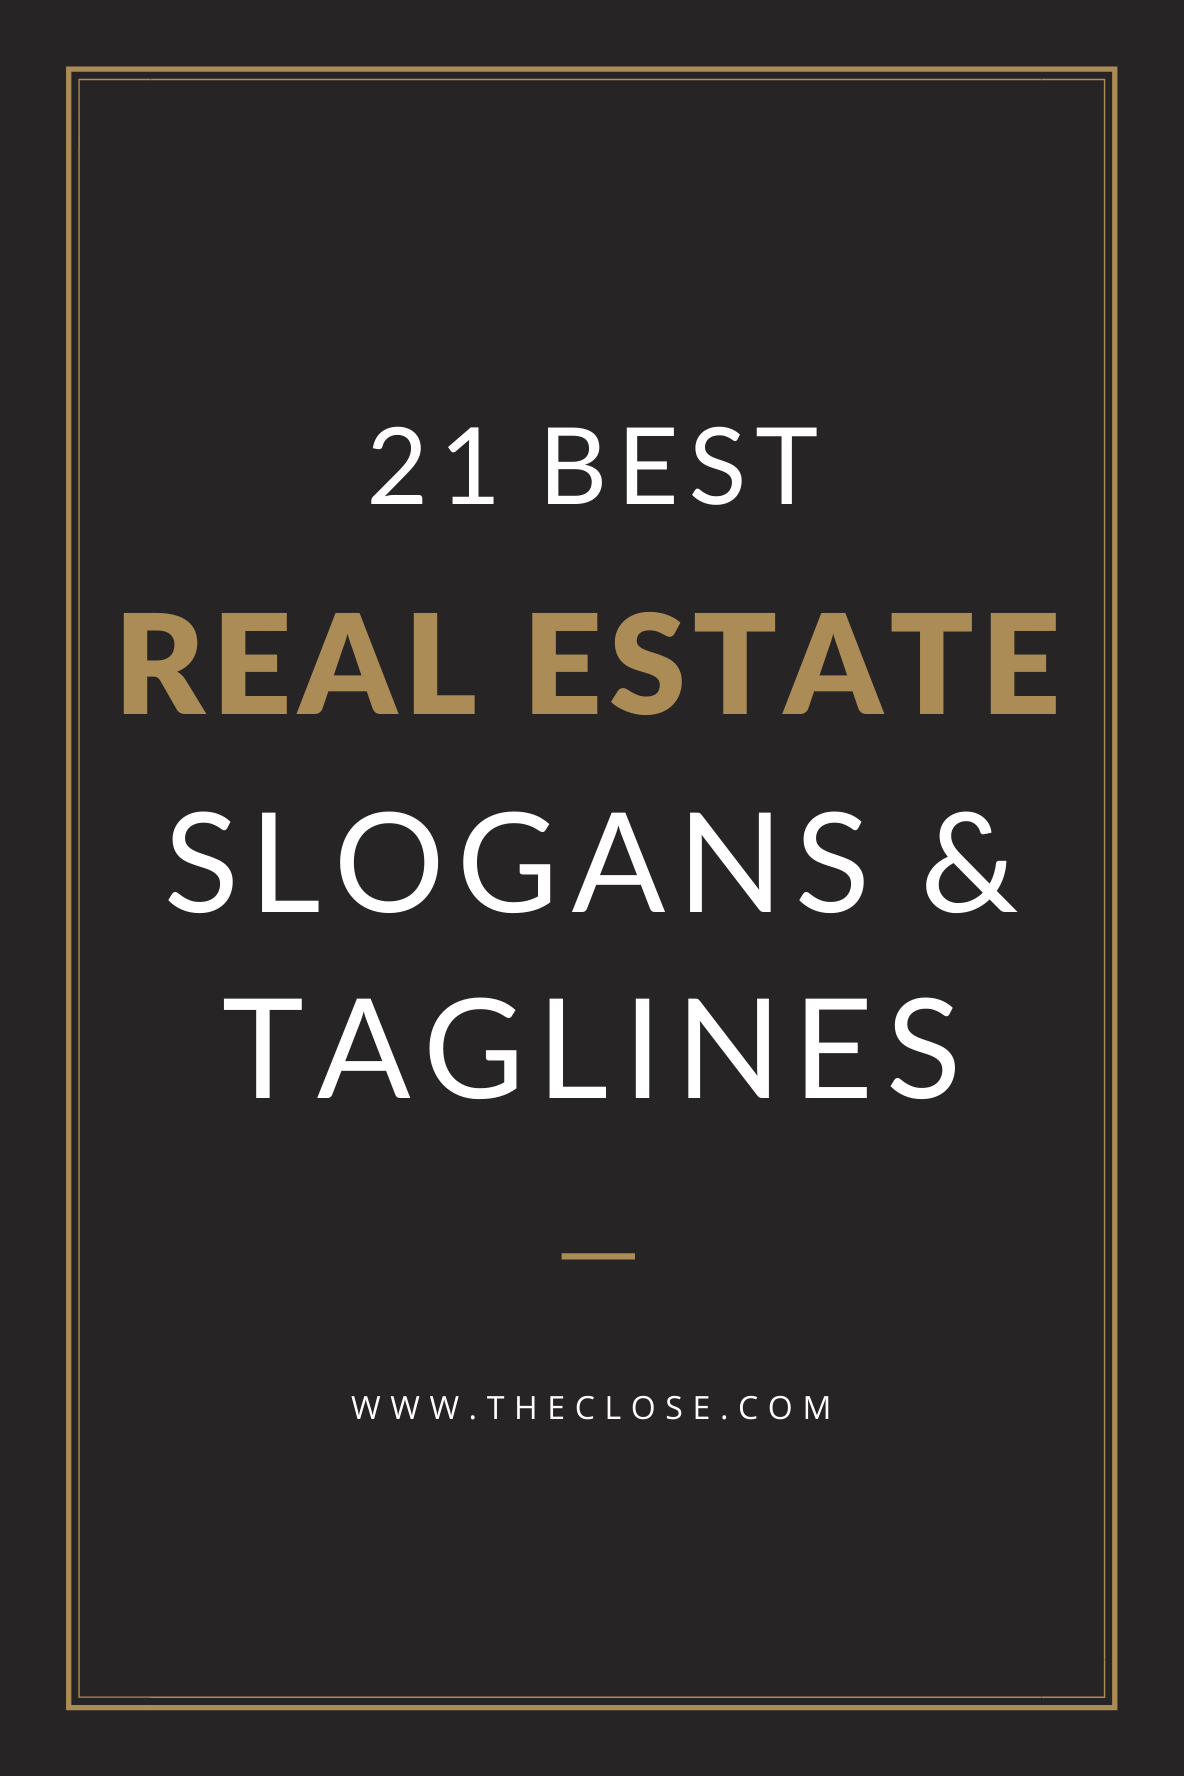 Best Real Estate Slogans & Taglines